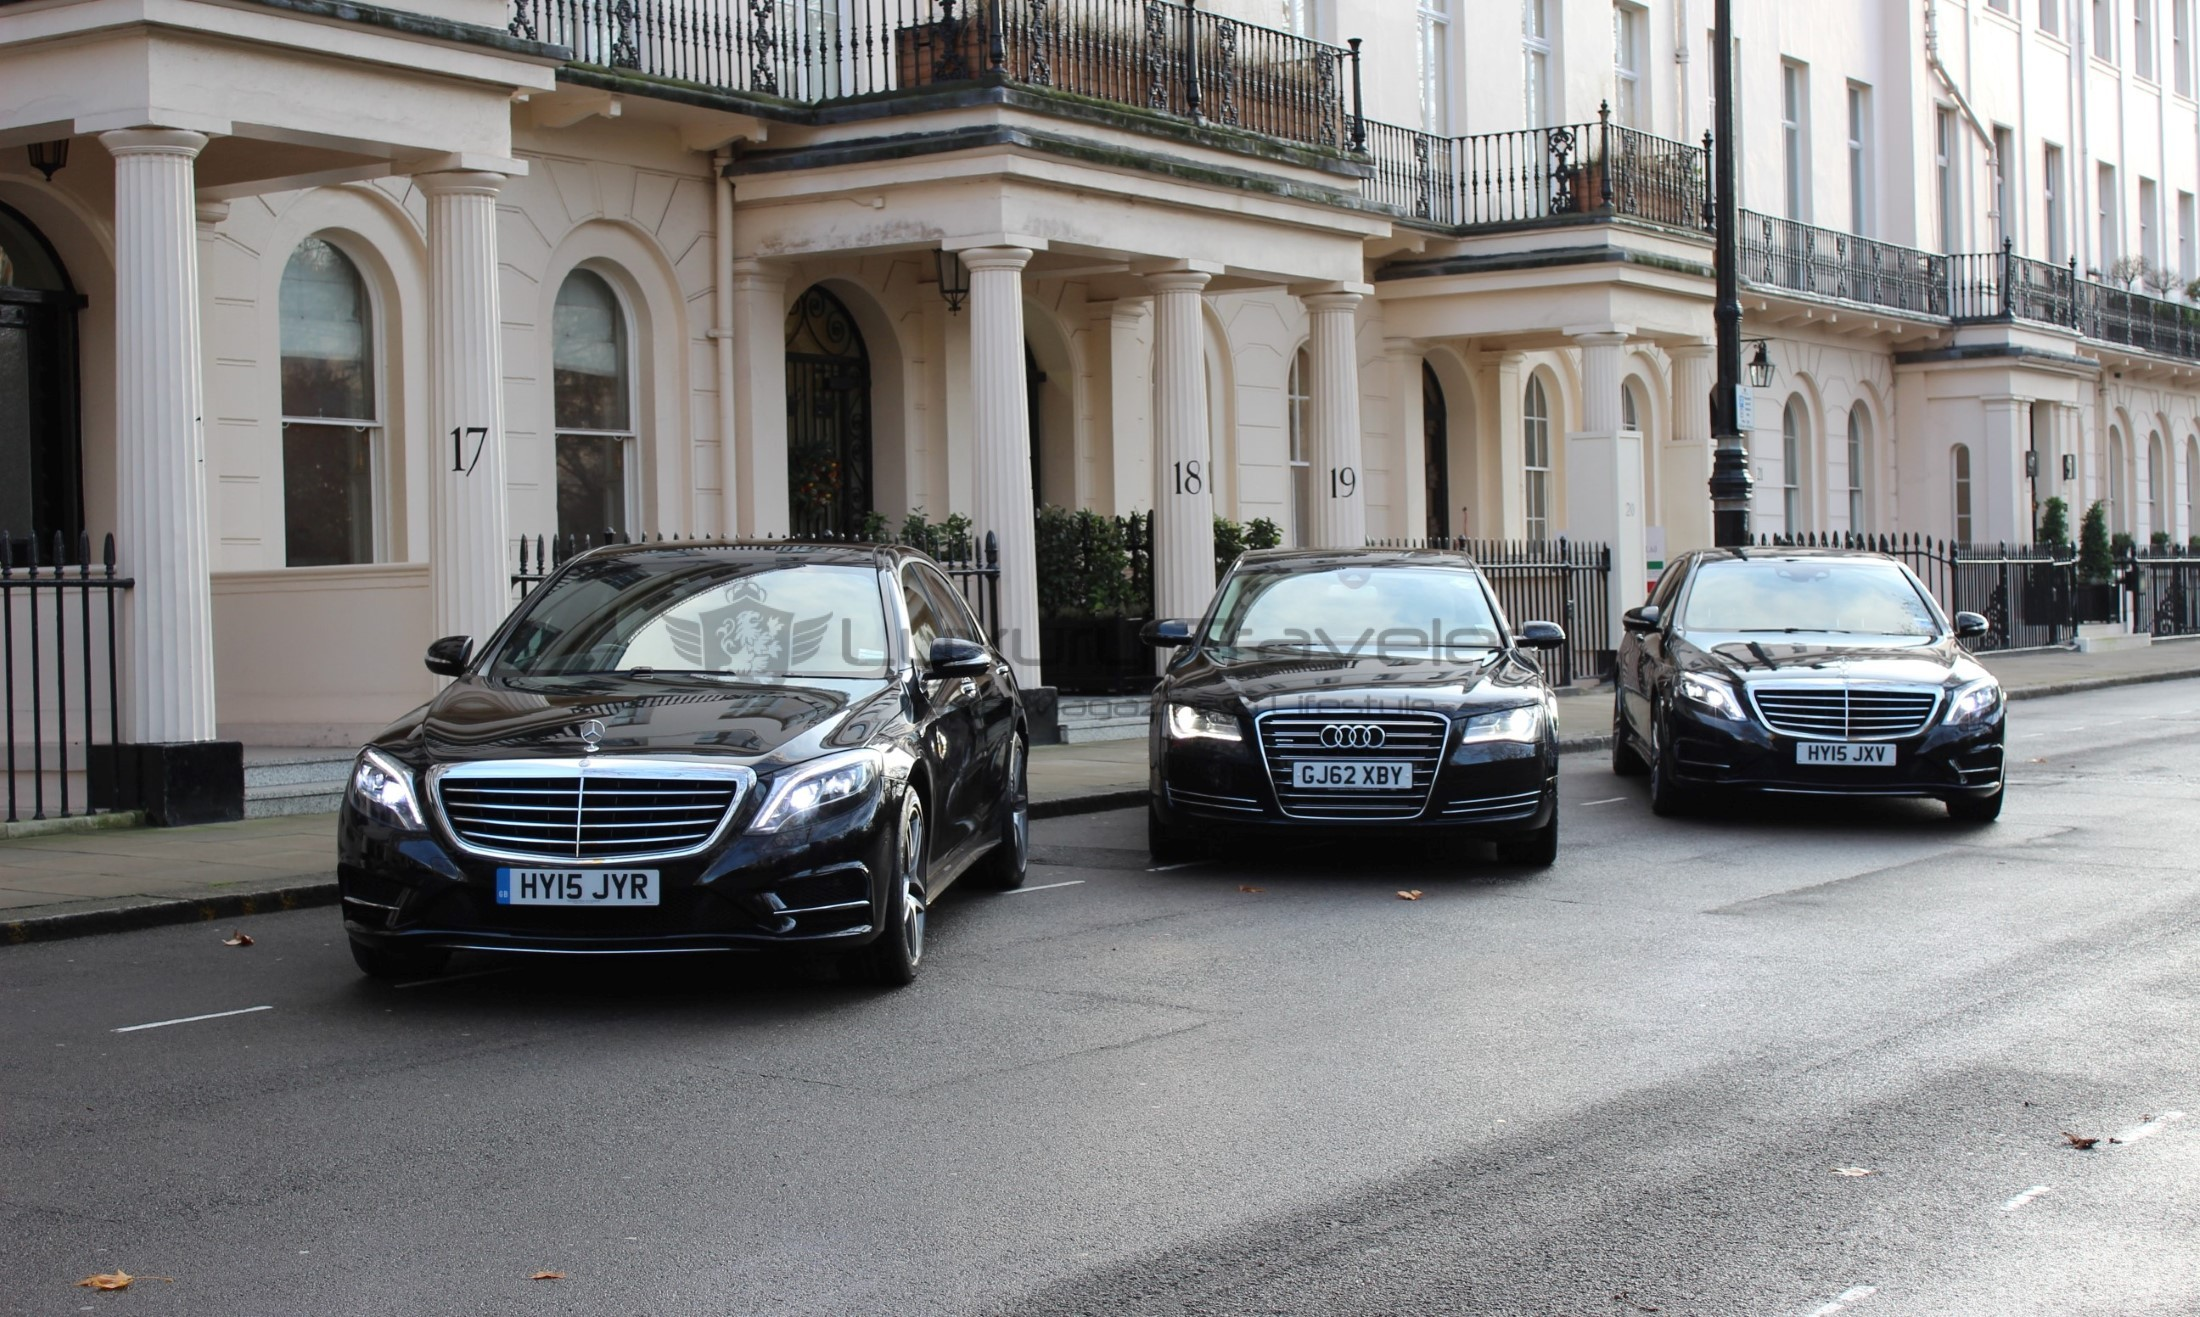 eg_chauffers_luxury_london_uk_fleet